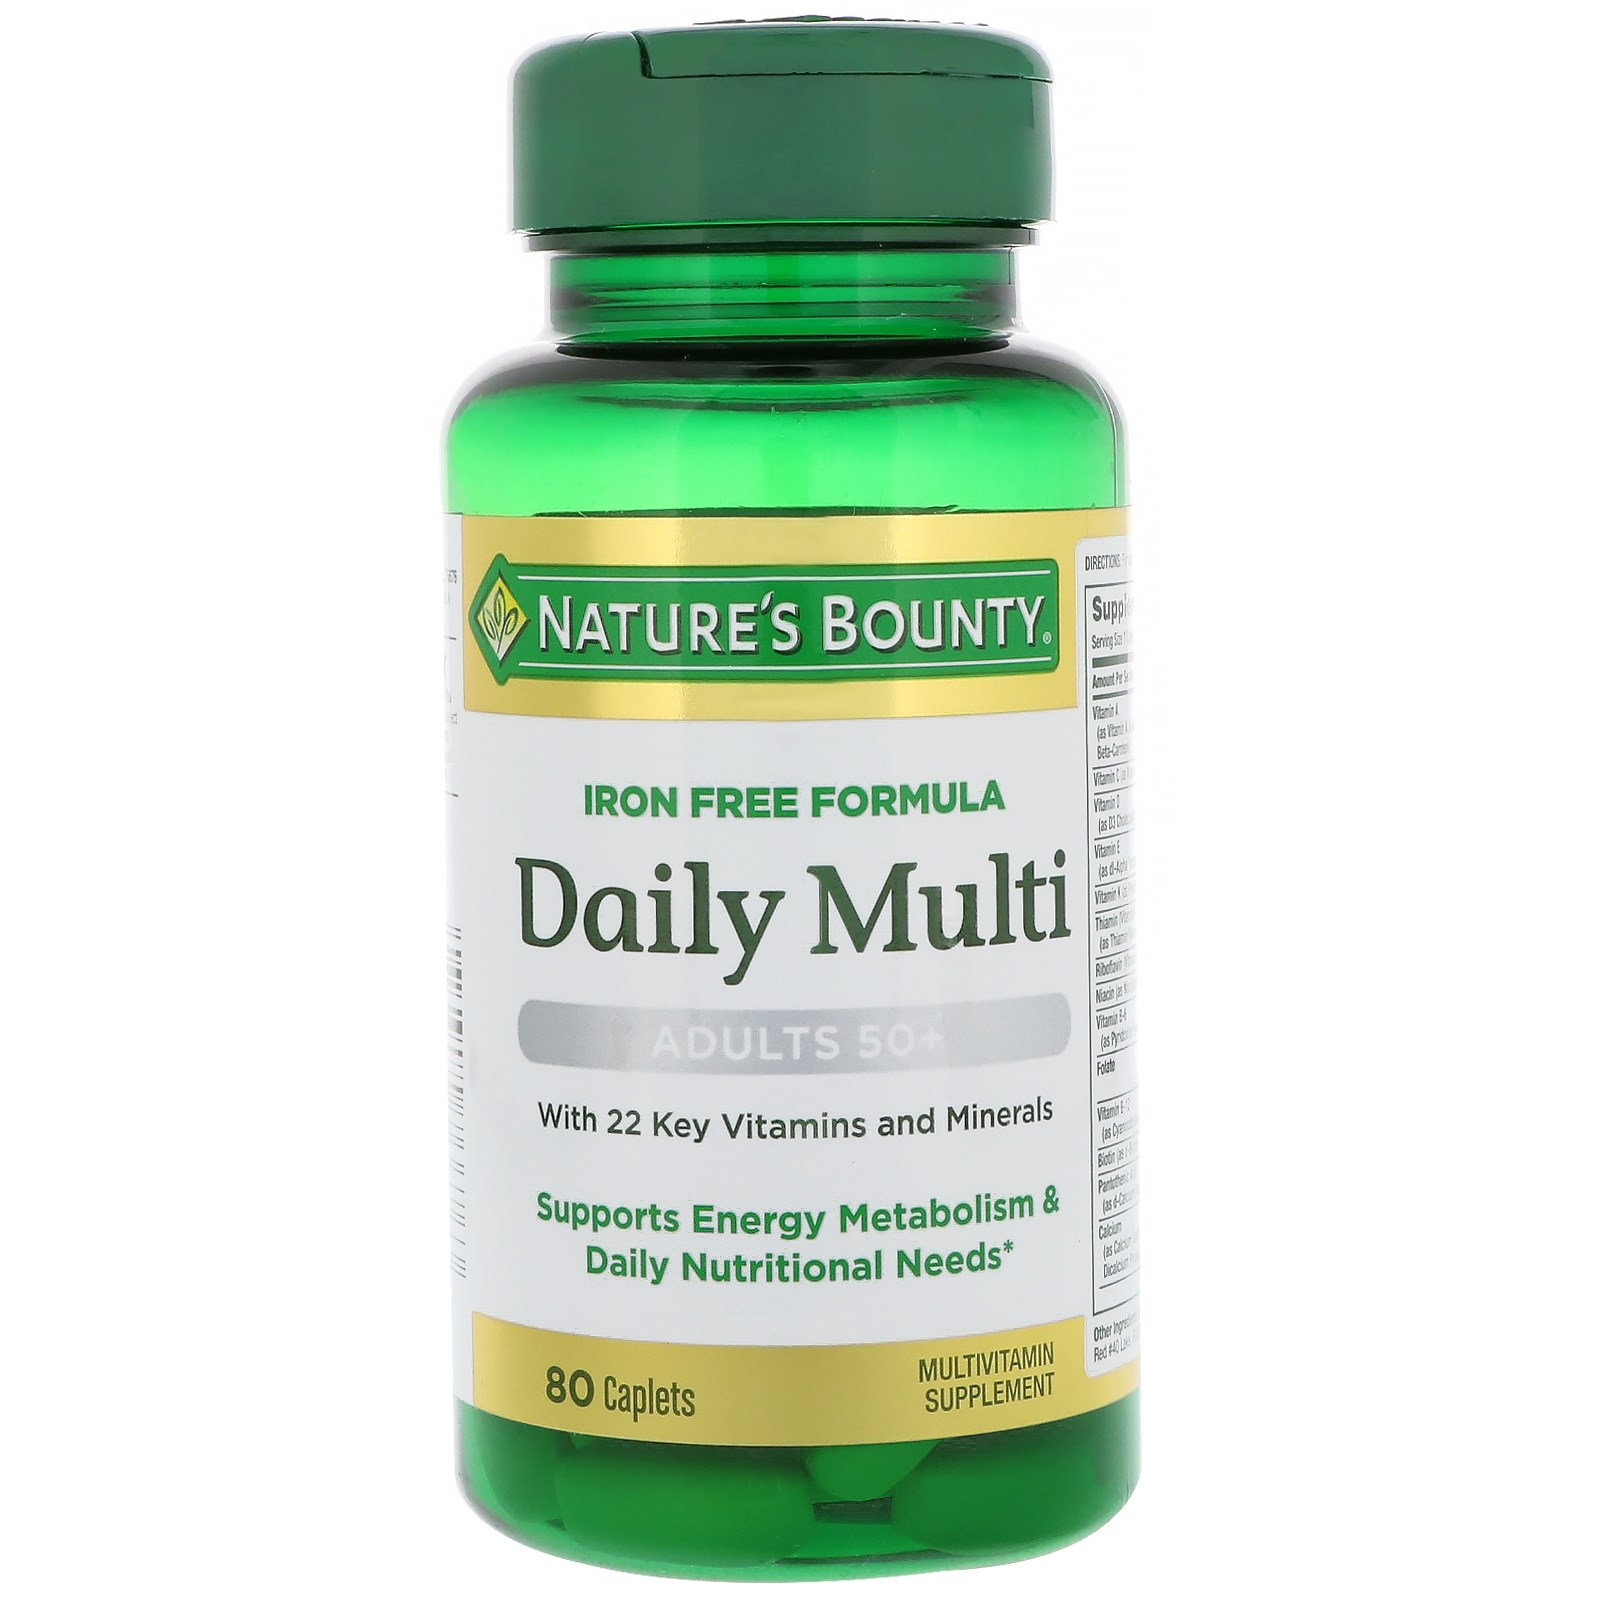 Nature's Bounty, Daily Multi, Adults 50+, 80 Caplets